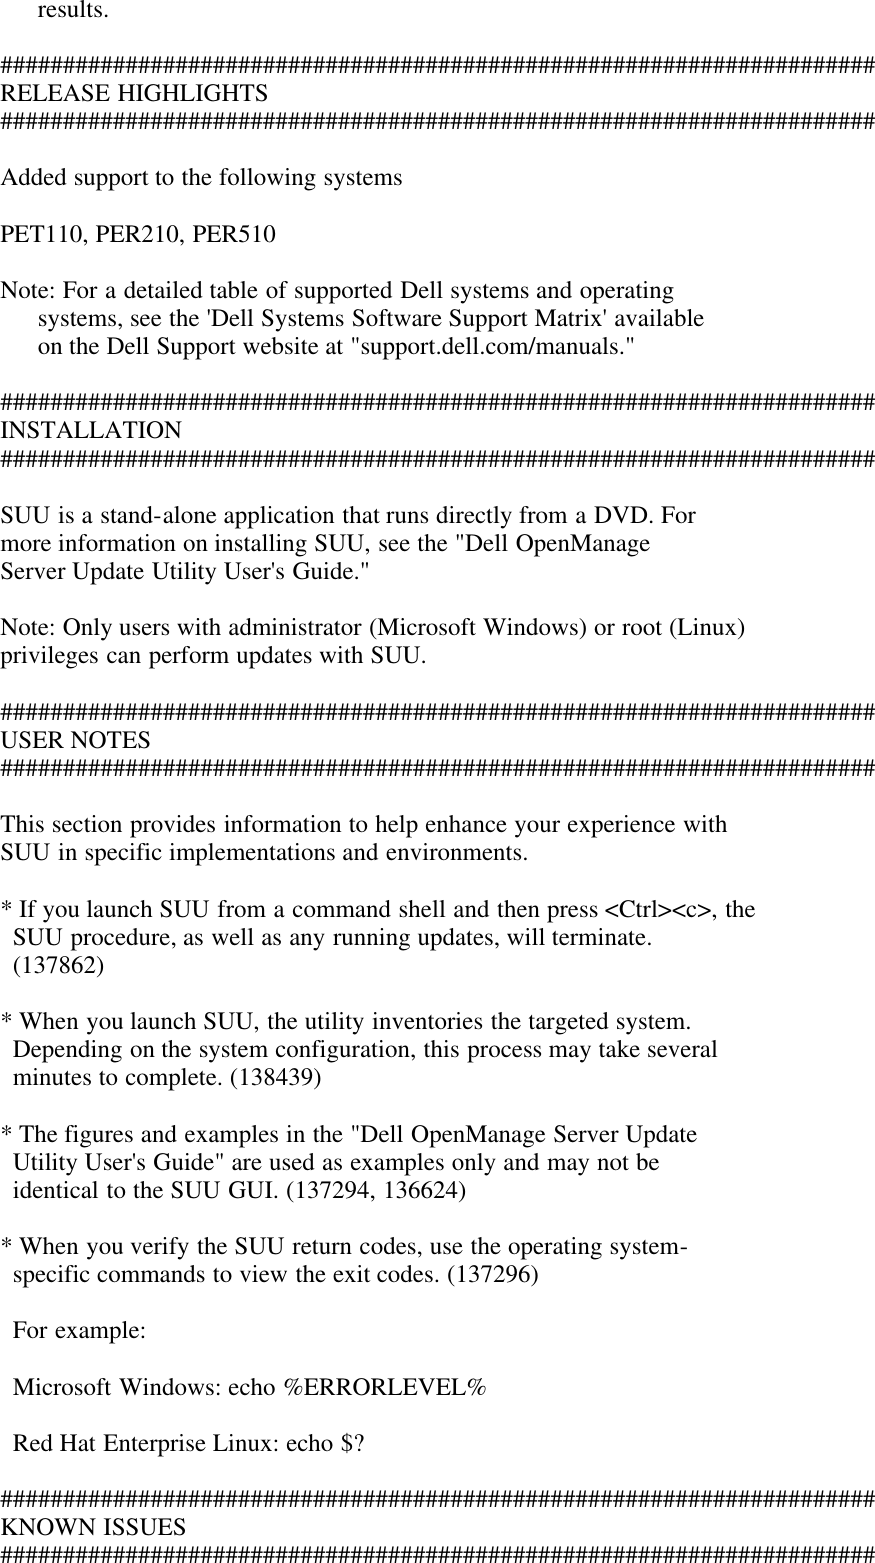 Dell Server Update Utility Version 6 3 Owners Manual 6 3 Readme For